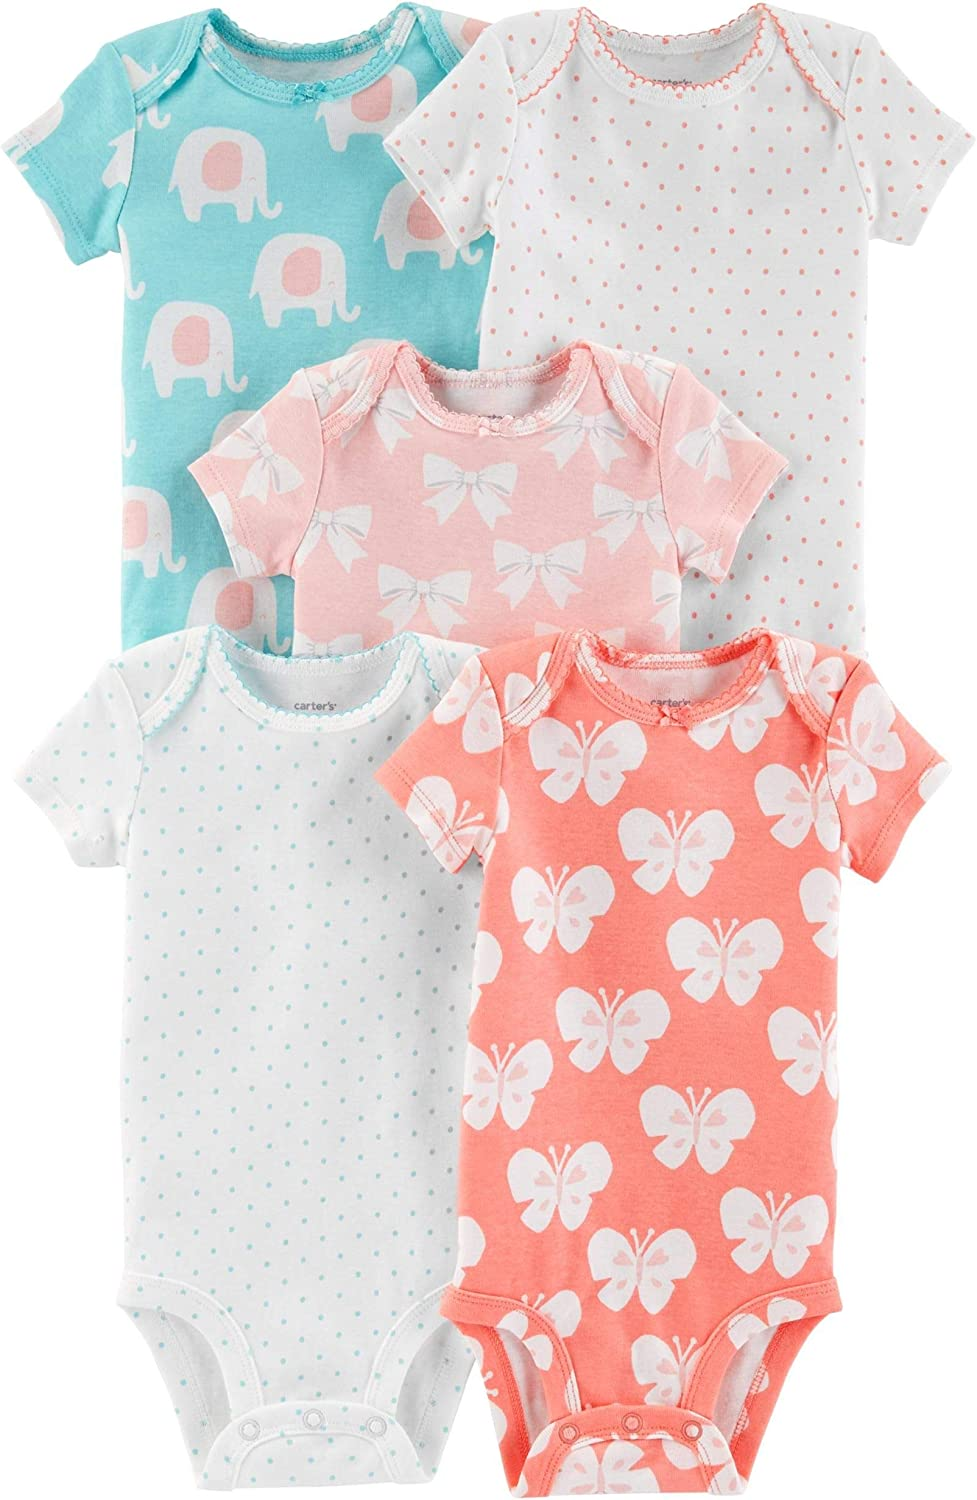 Carters Mix Pack Bodysuits for Baby Girl